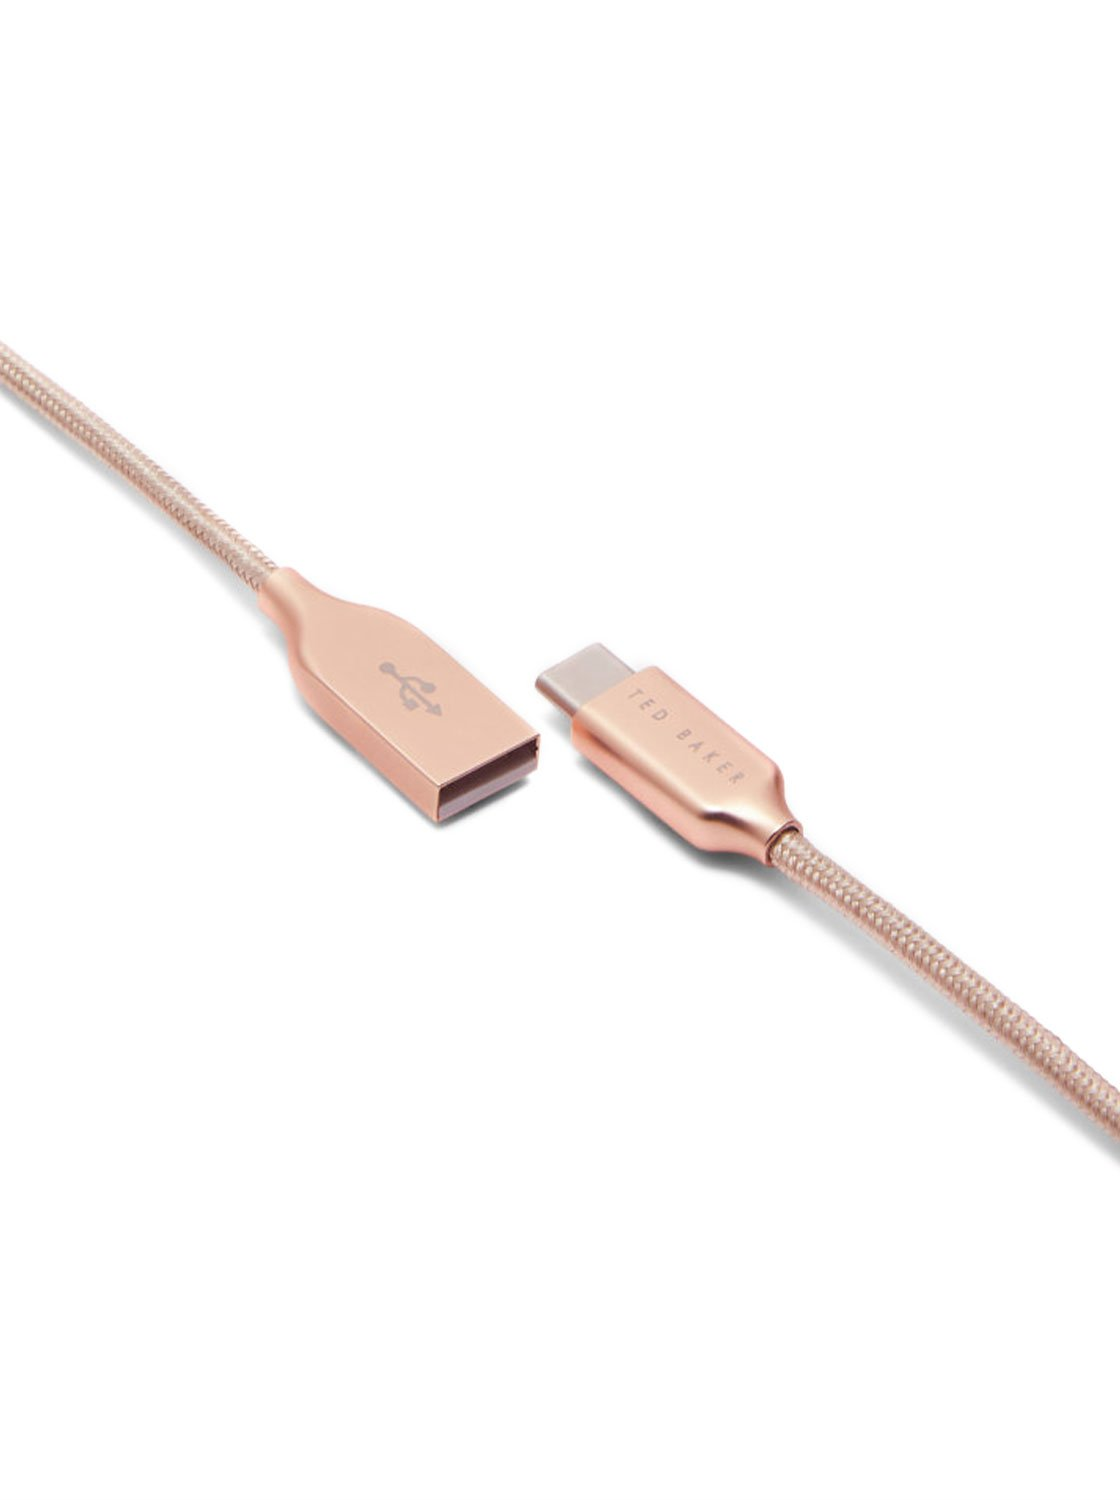 CORLIE Braided 1M USB-C to USB-A Charging Cable - Taupe Nylon / Rose-Gold